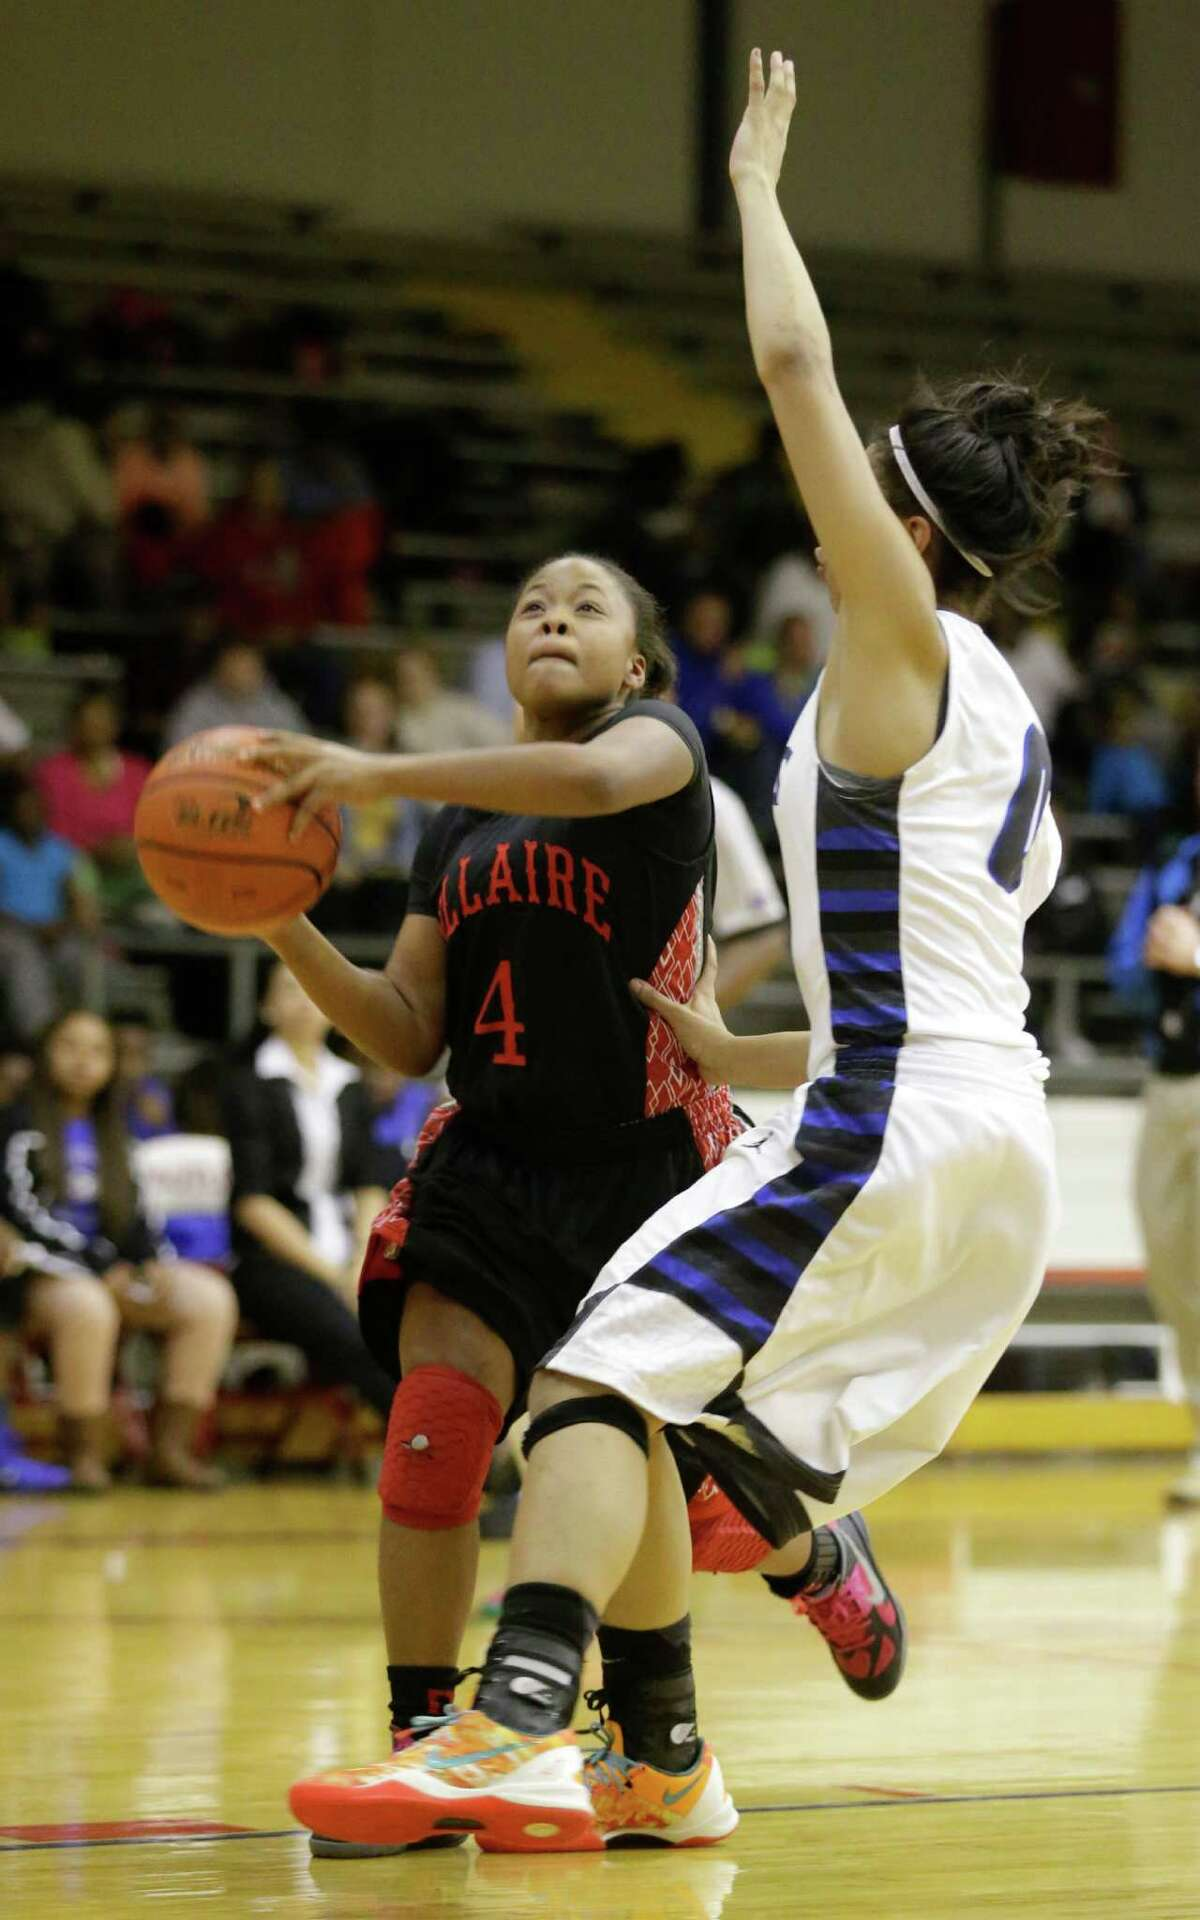 Bellaire's Audrianna Brown (4) shoots over Westside's Ashely Kwartler during the first half of a women's high school basketball game at Butler Field House on Tuesday, Feb. 4, 2014, in Houston. ( J. Patric Schneider / For the Chronicle )